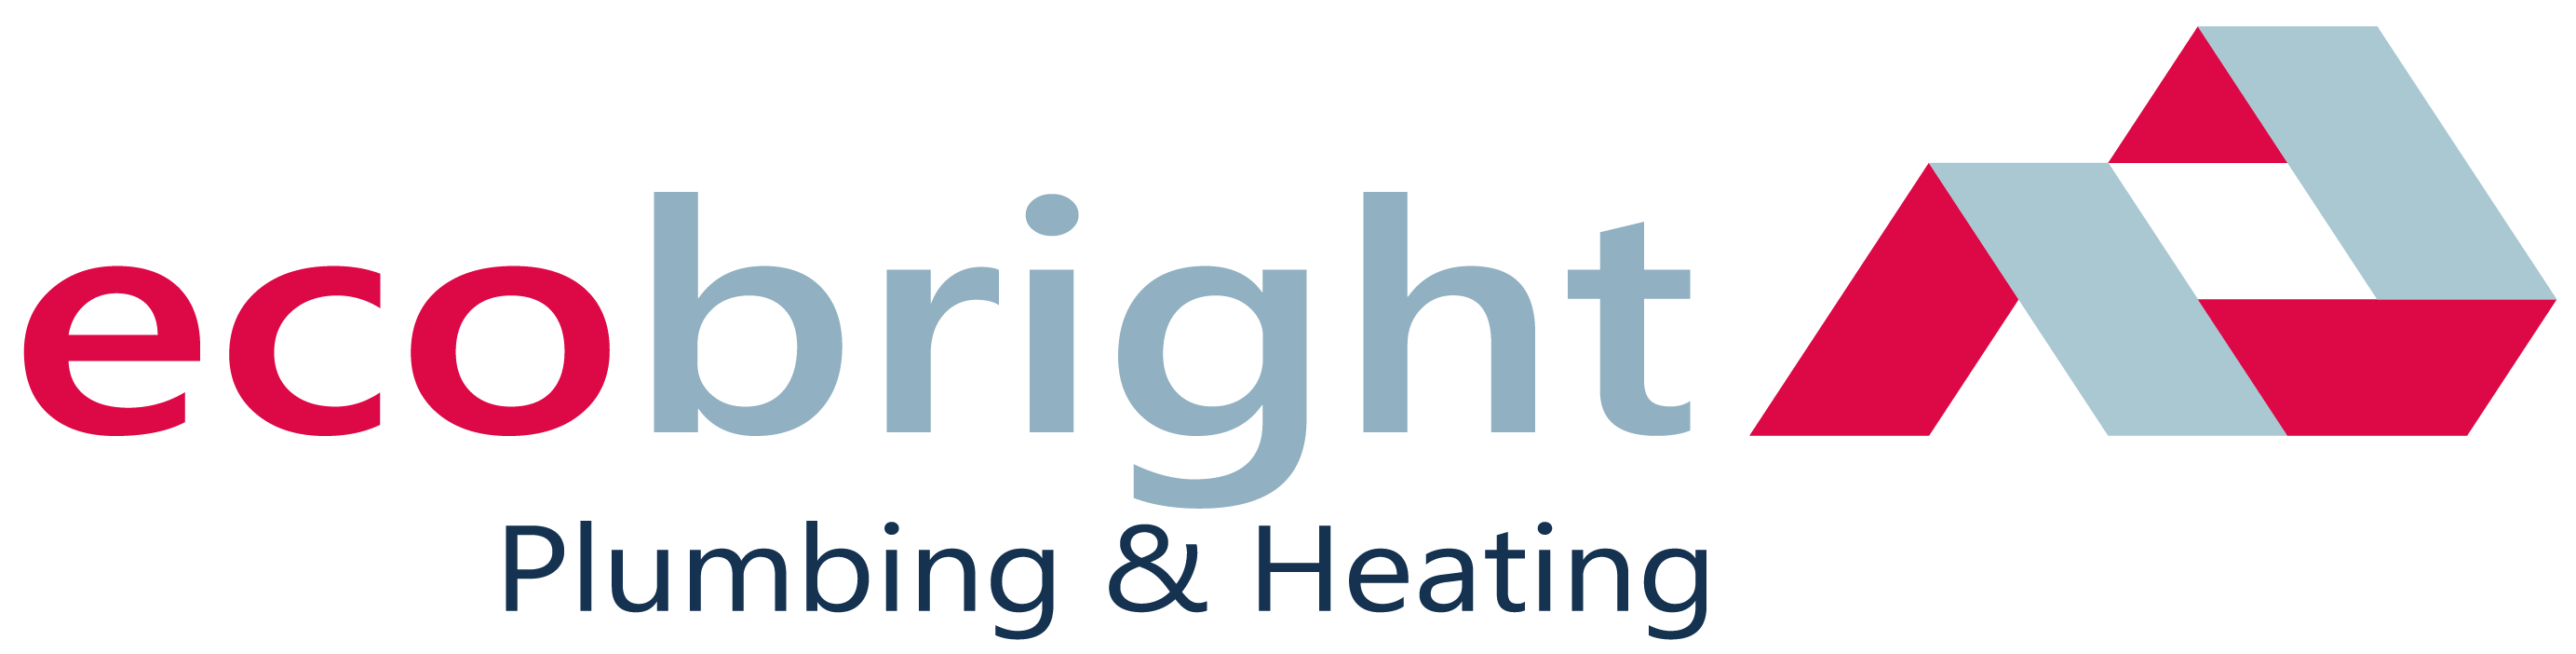 Ecobright Plumbing and Heating